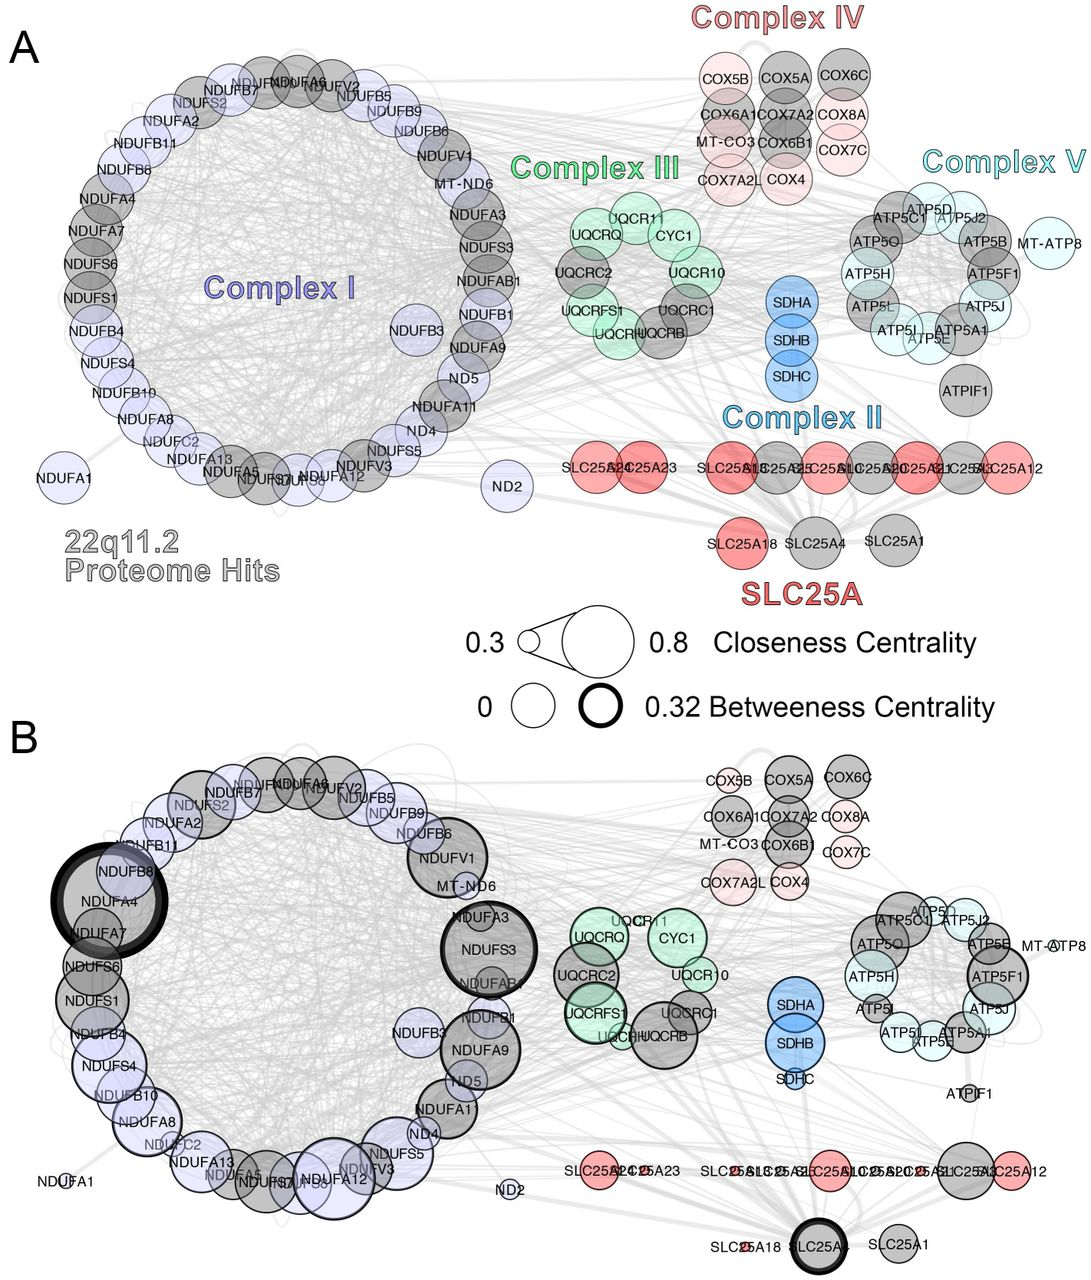 Systems Analysis of the 22q11 2 Microdeletion Syndrome Converges on